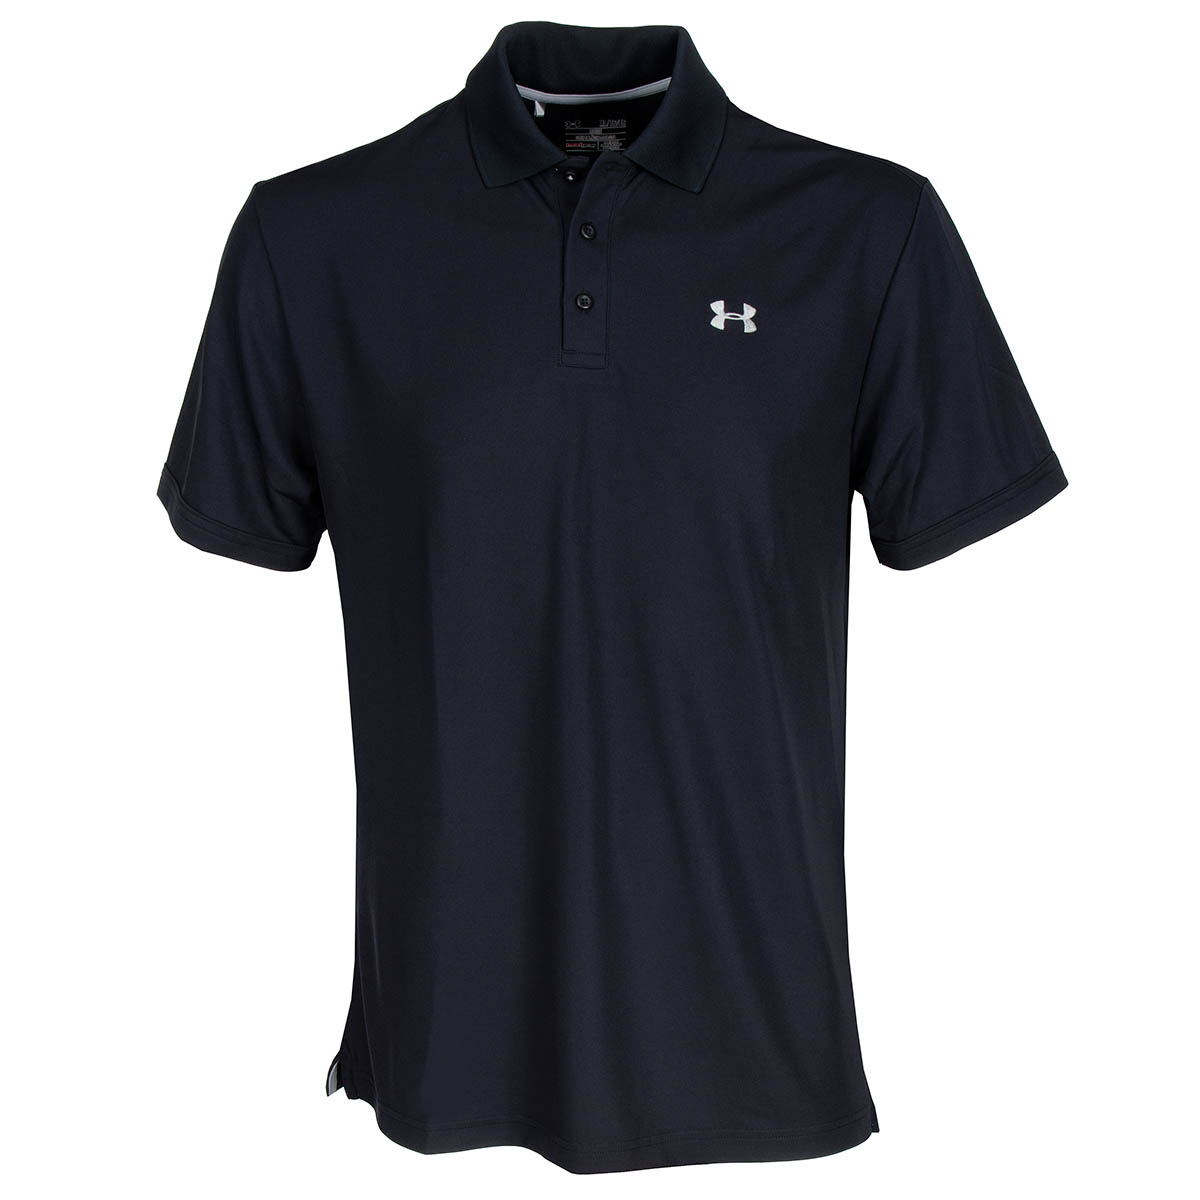 Under armour performance polo shirt black steel for Under armour embroidered polo shirts